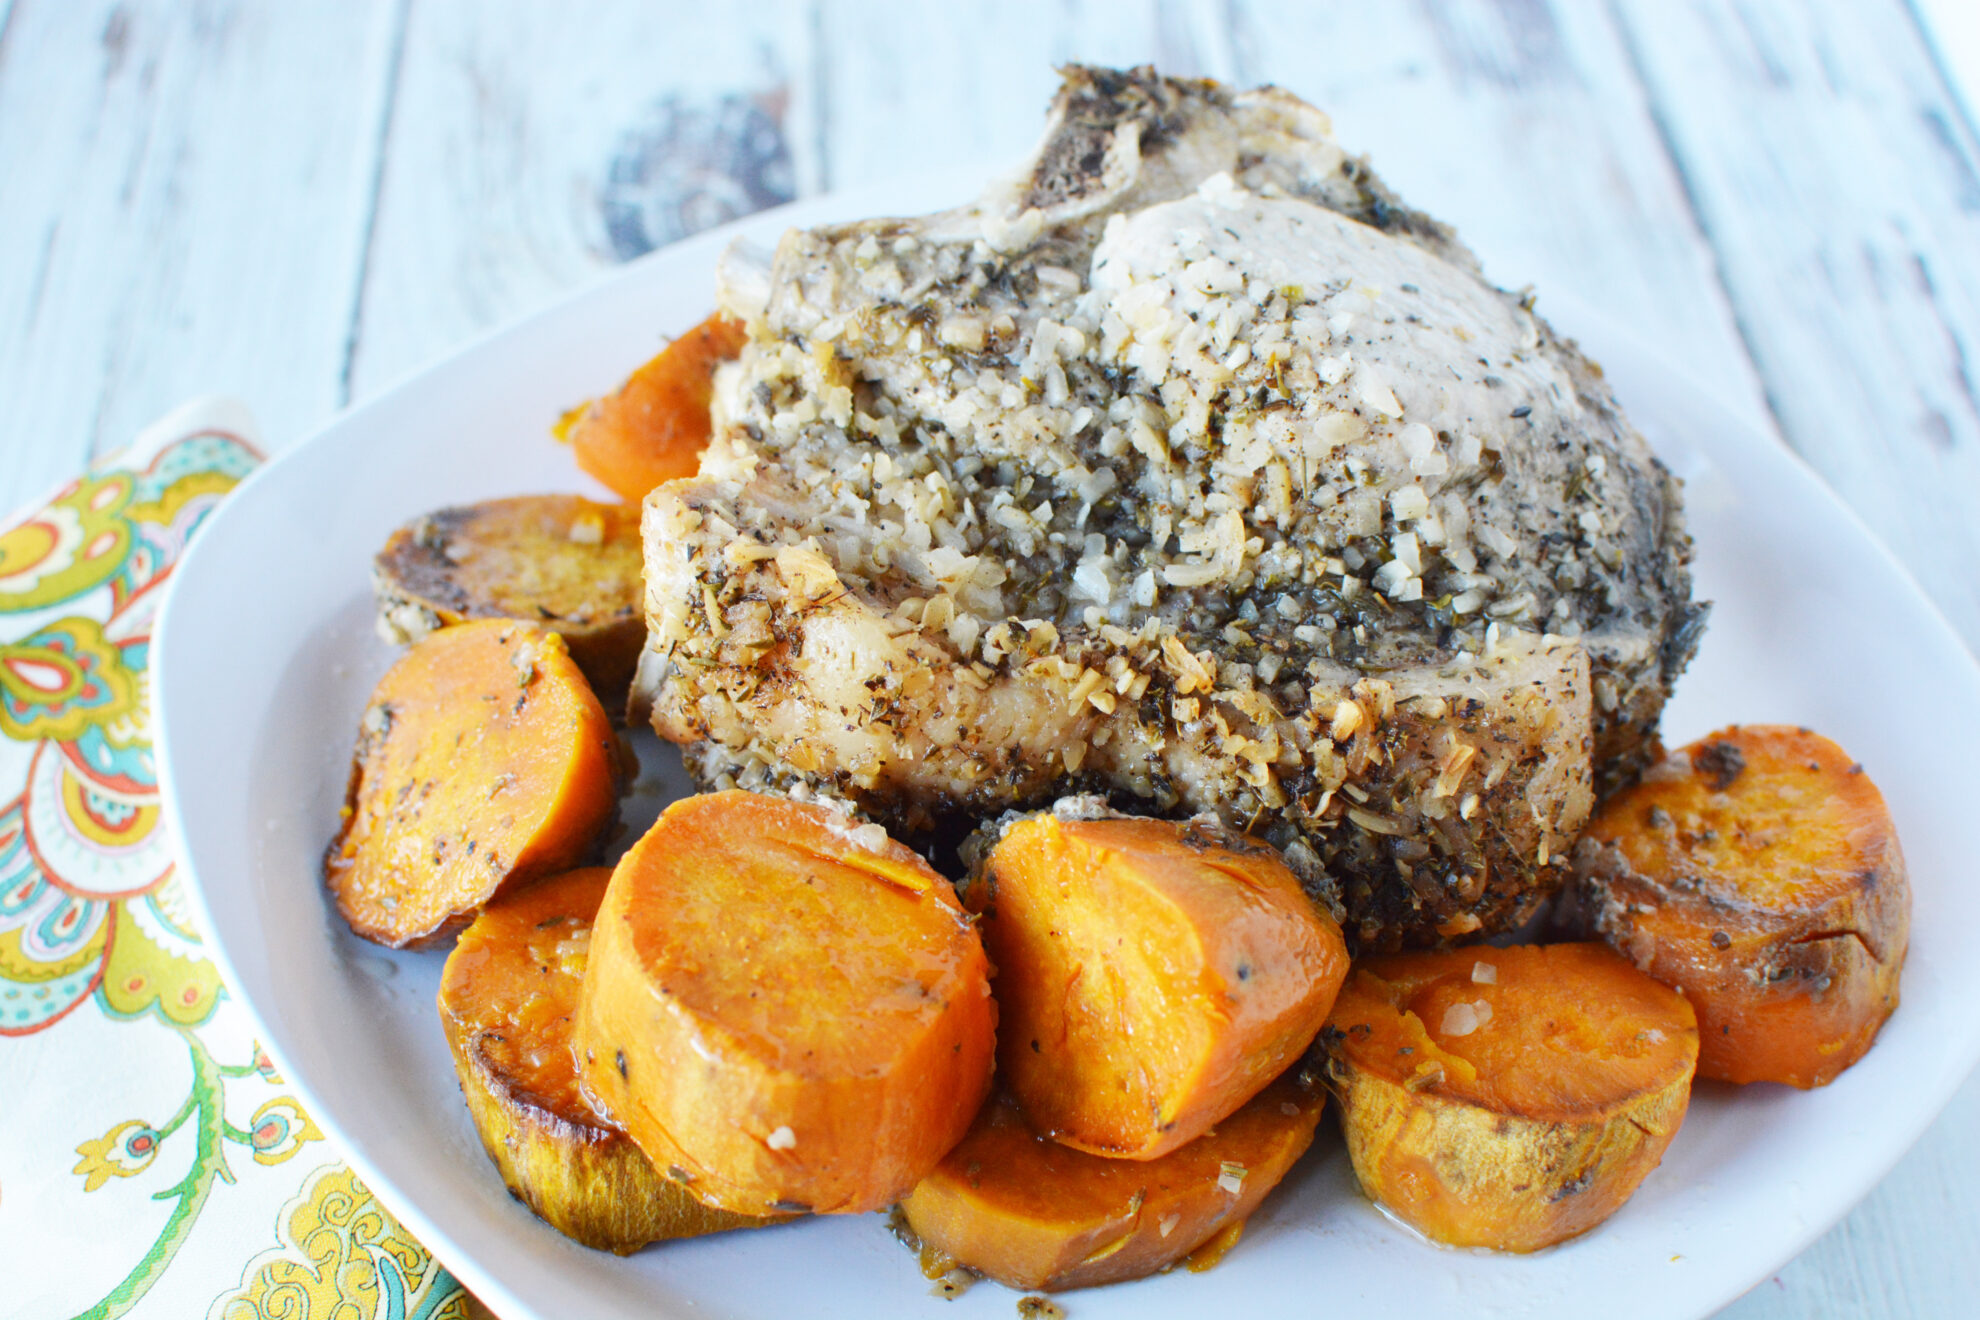 Slow Cooker Italian Pork & Sweet Potatoes a great weeknight meal and you can find it on 5DollarDinners.com